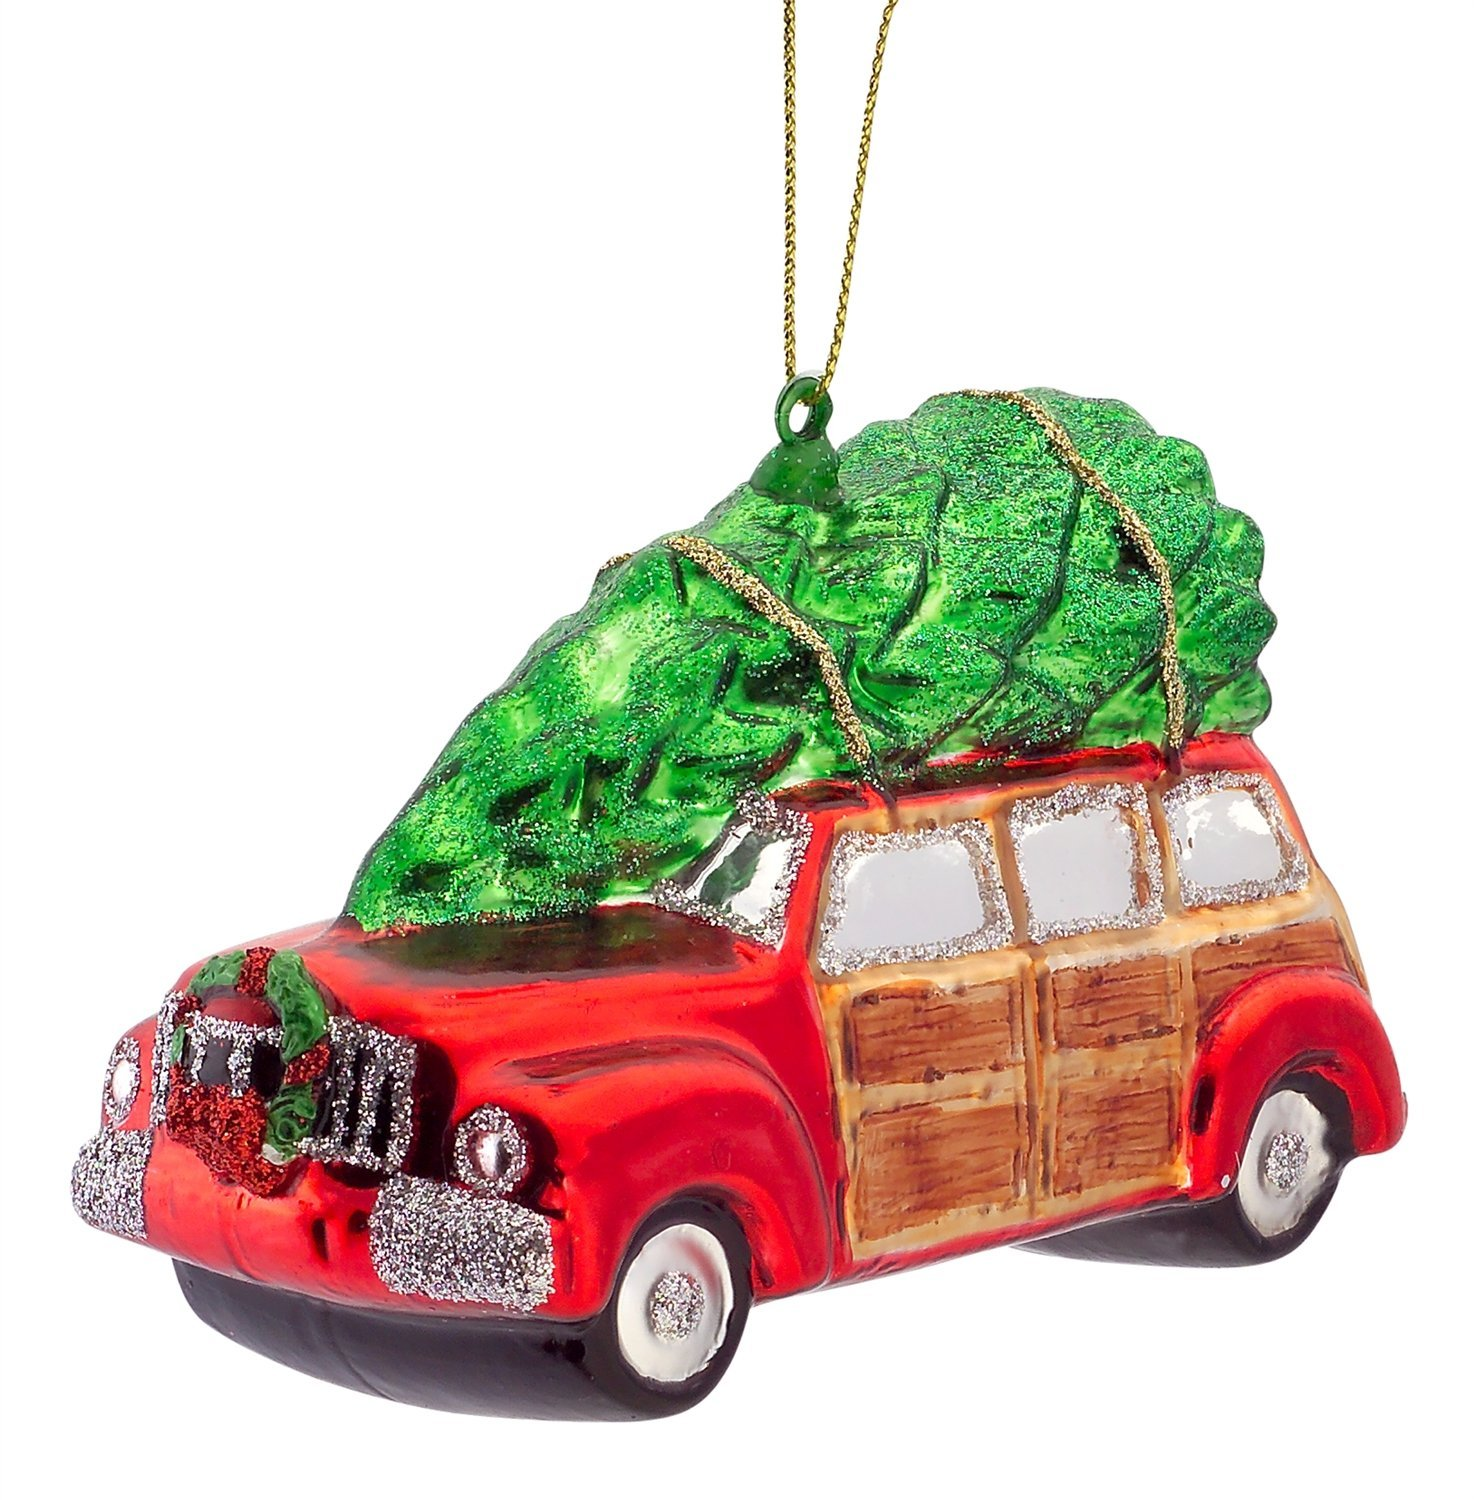 Melrose Vintage Woody Station Wagon Car with Tree on Roof Glass Ornament